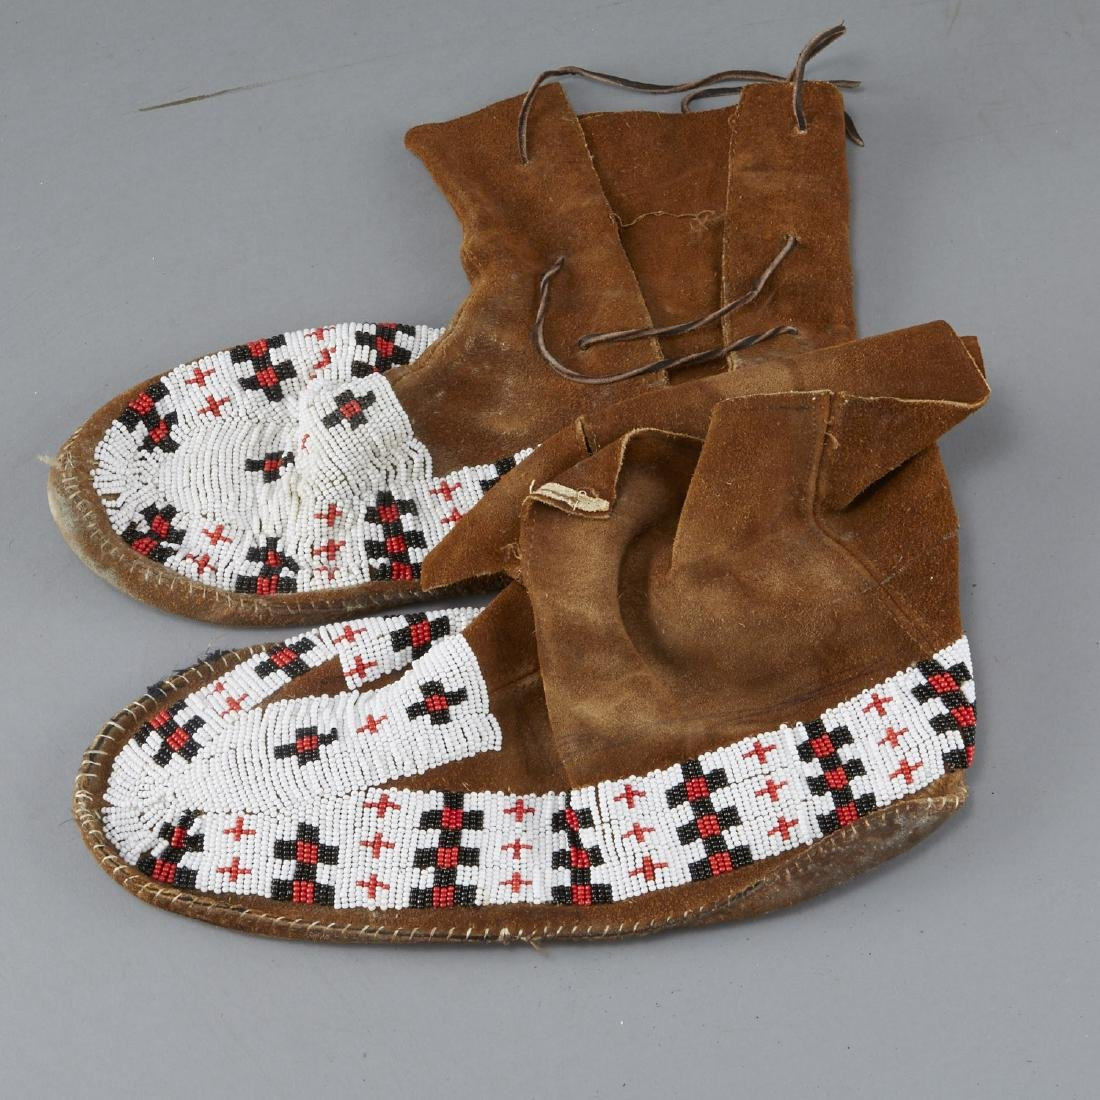 8 Pairs Beaded Moccasin Boots - 7